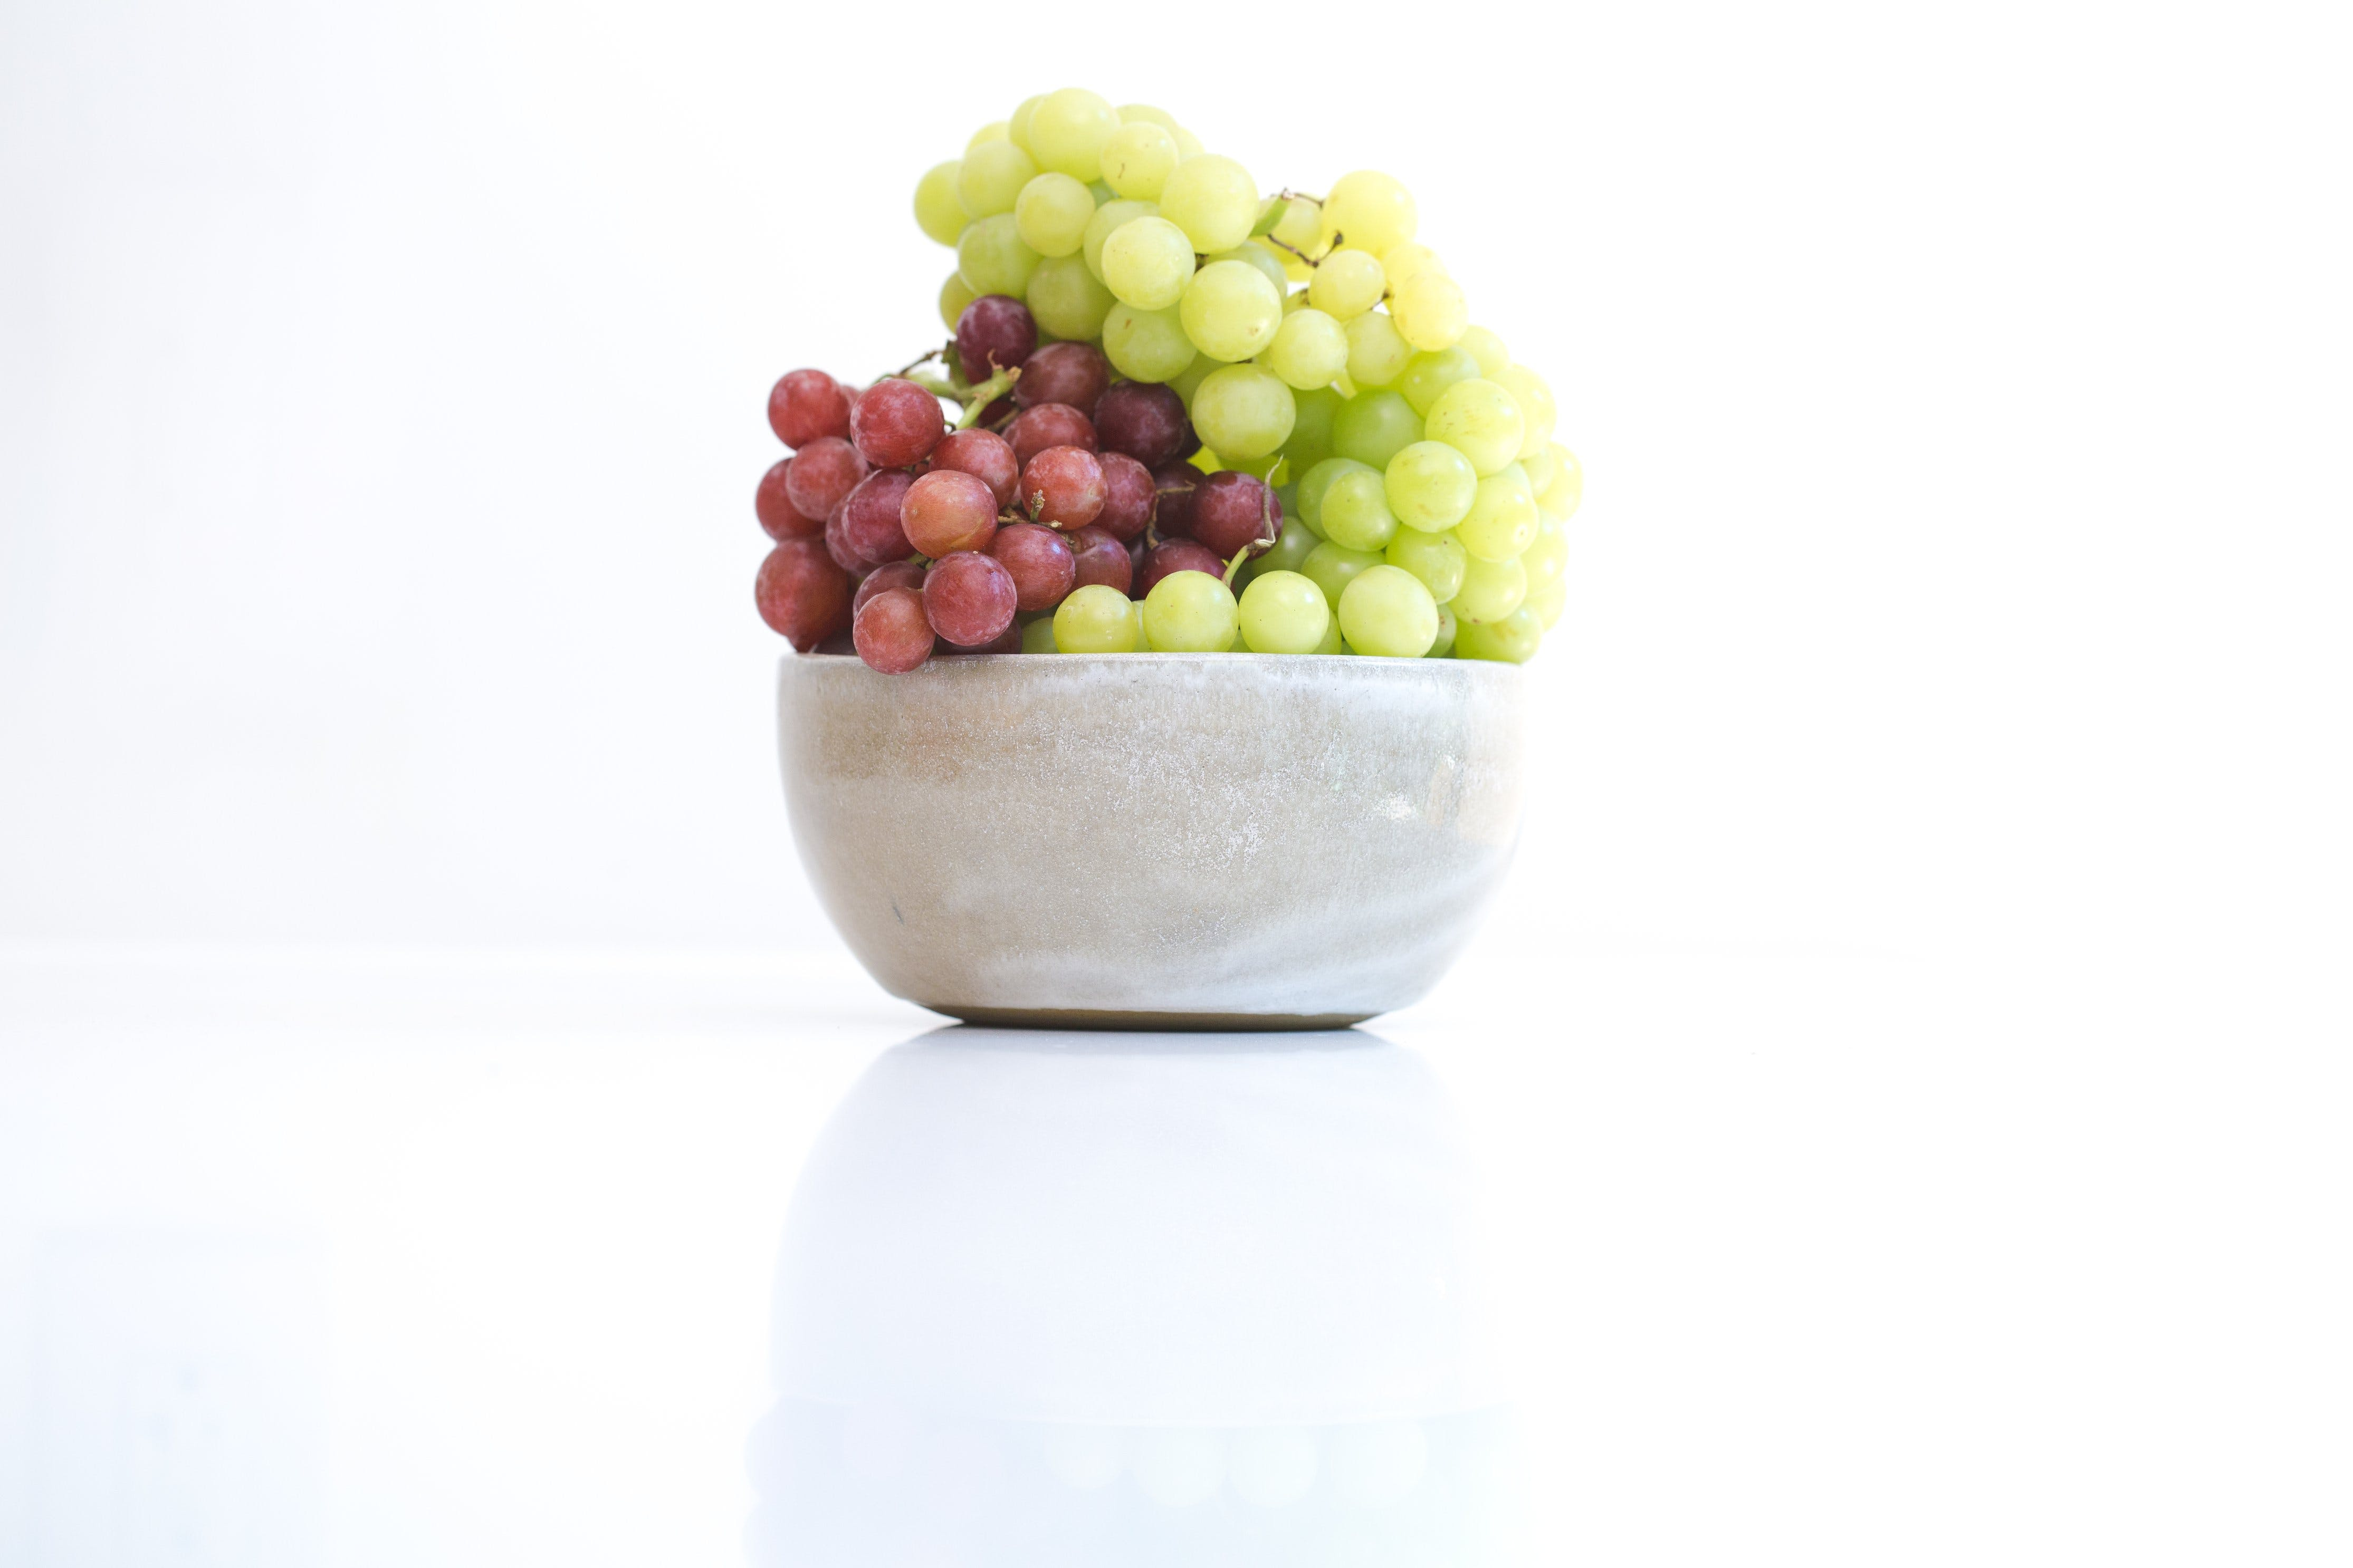 Grapes in Round Gray Bowl